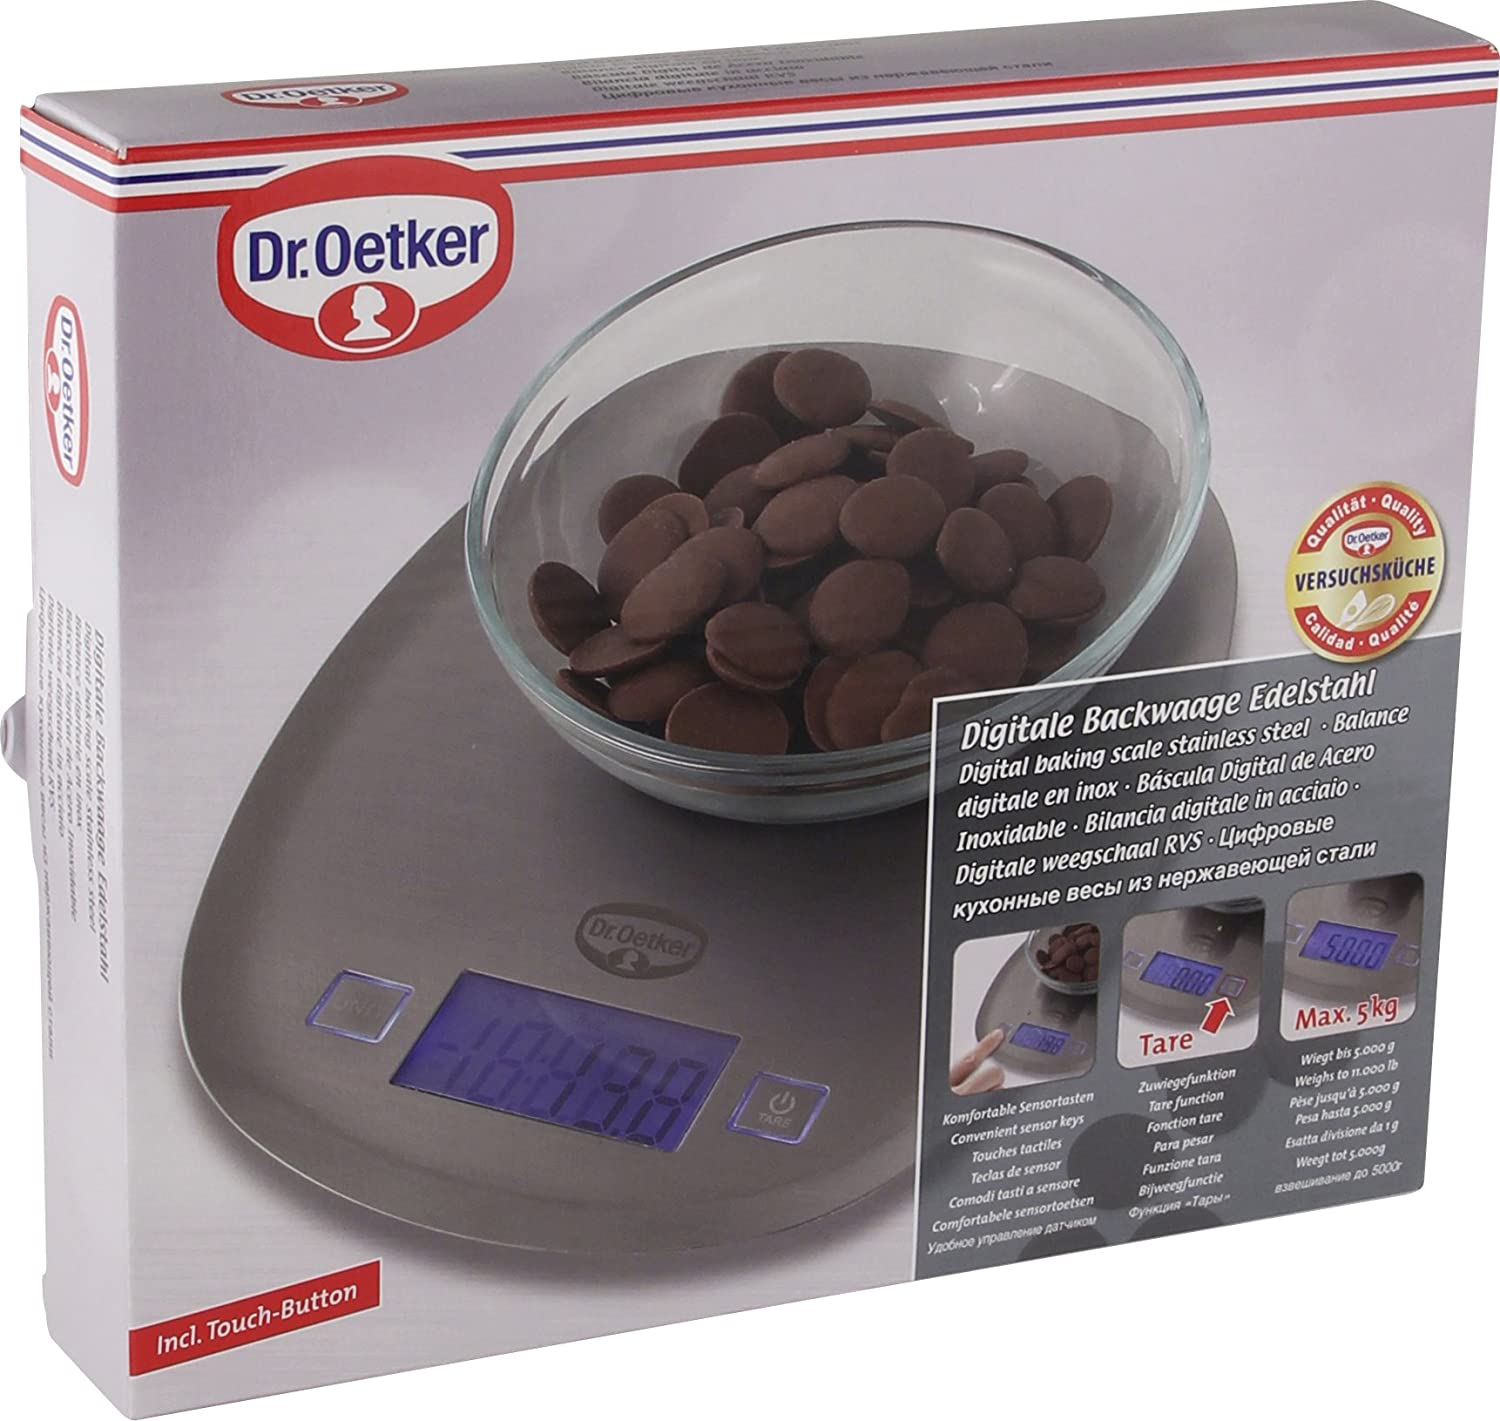 Amazon.com: Dr. Oetker Baking Scale Digital, Kitchen Scale, Scale, Digital Scale, Stainless Steel, Silver, 1536: Home & Kitchen